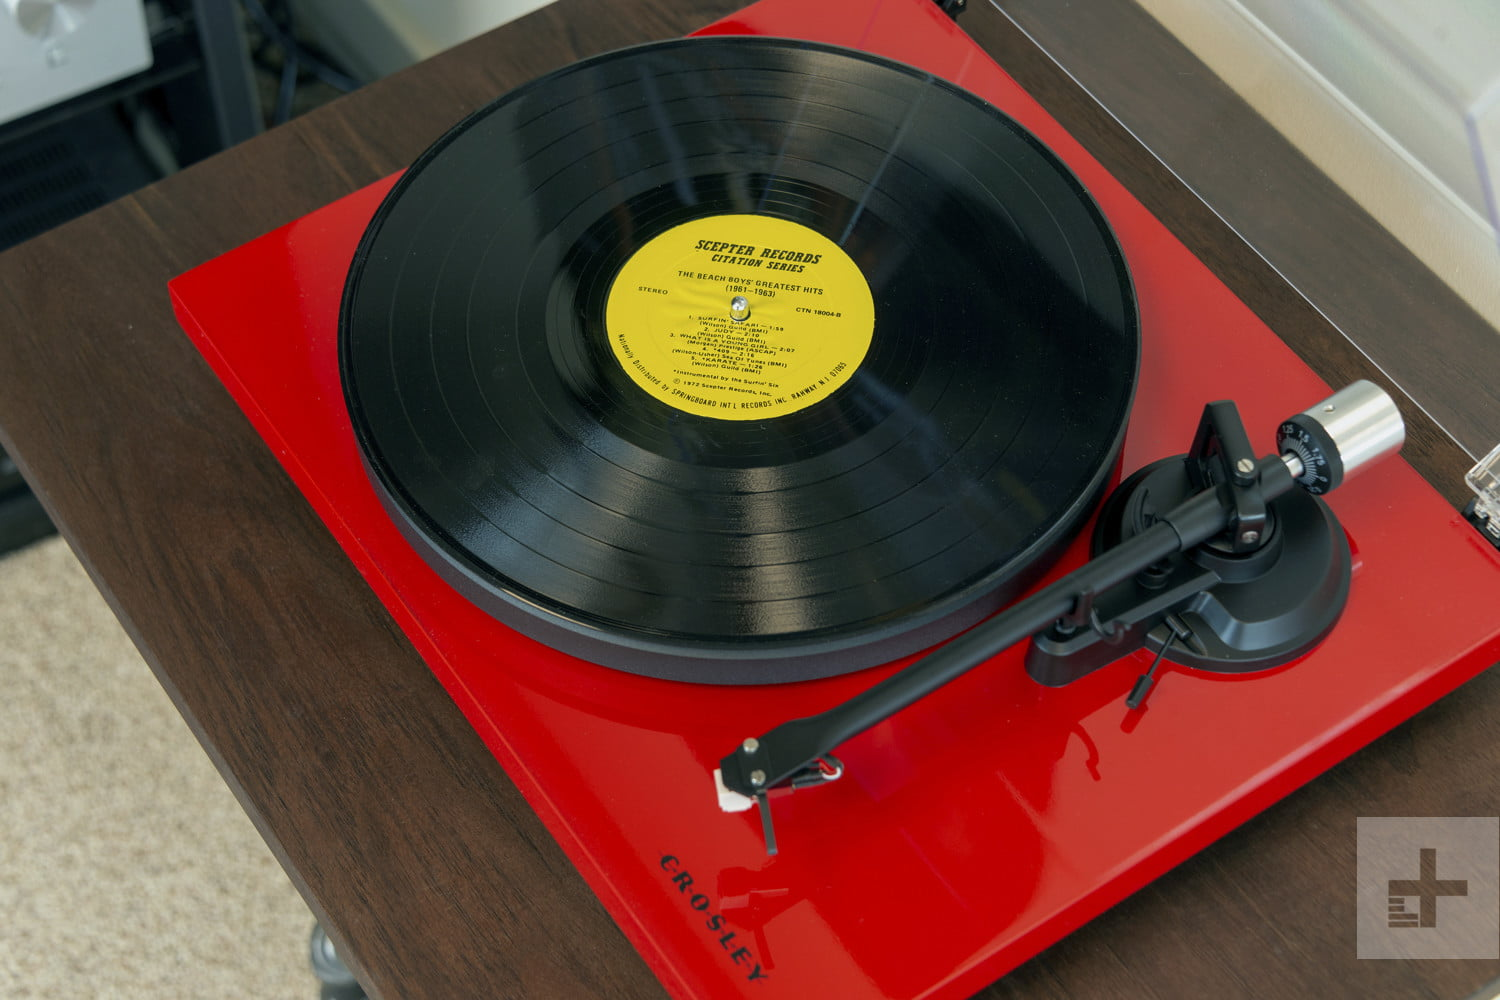 The Crosley C6 is your glimmering gateway to vinyl. Step inside